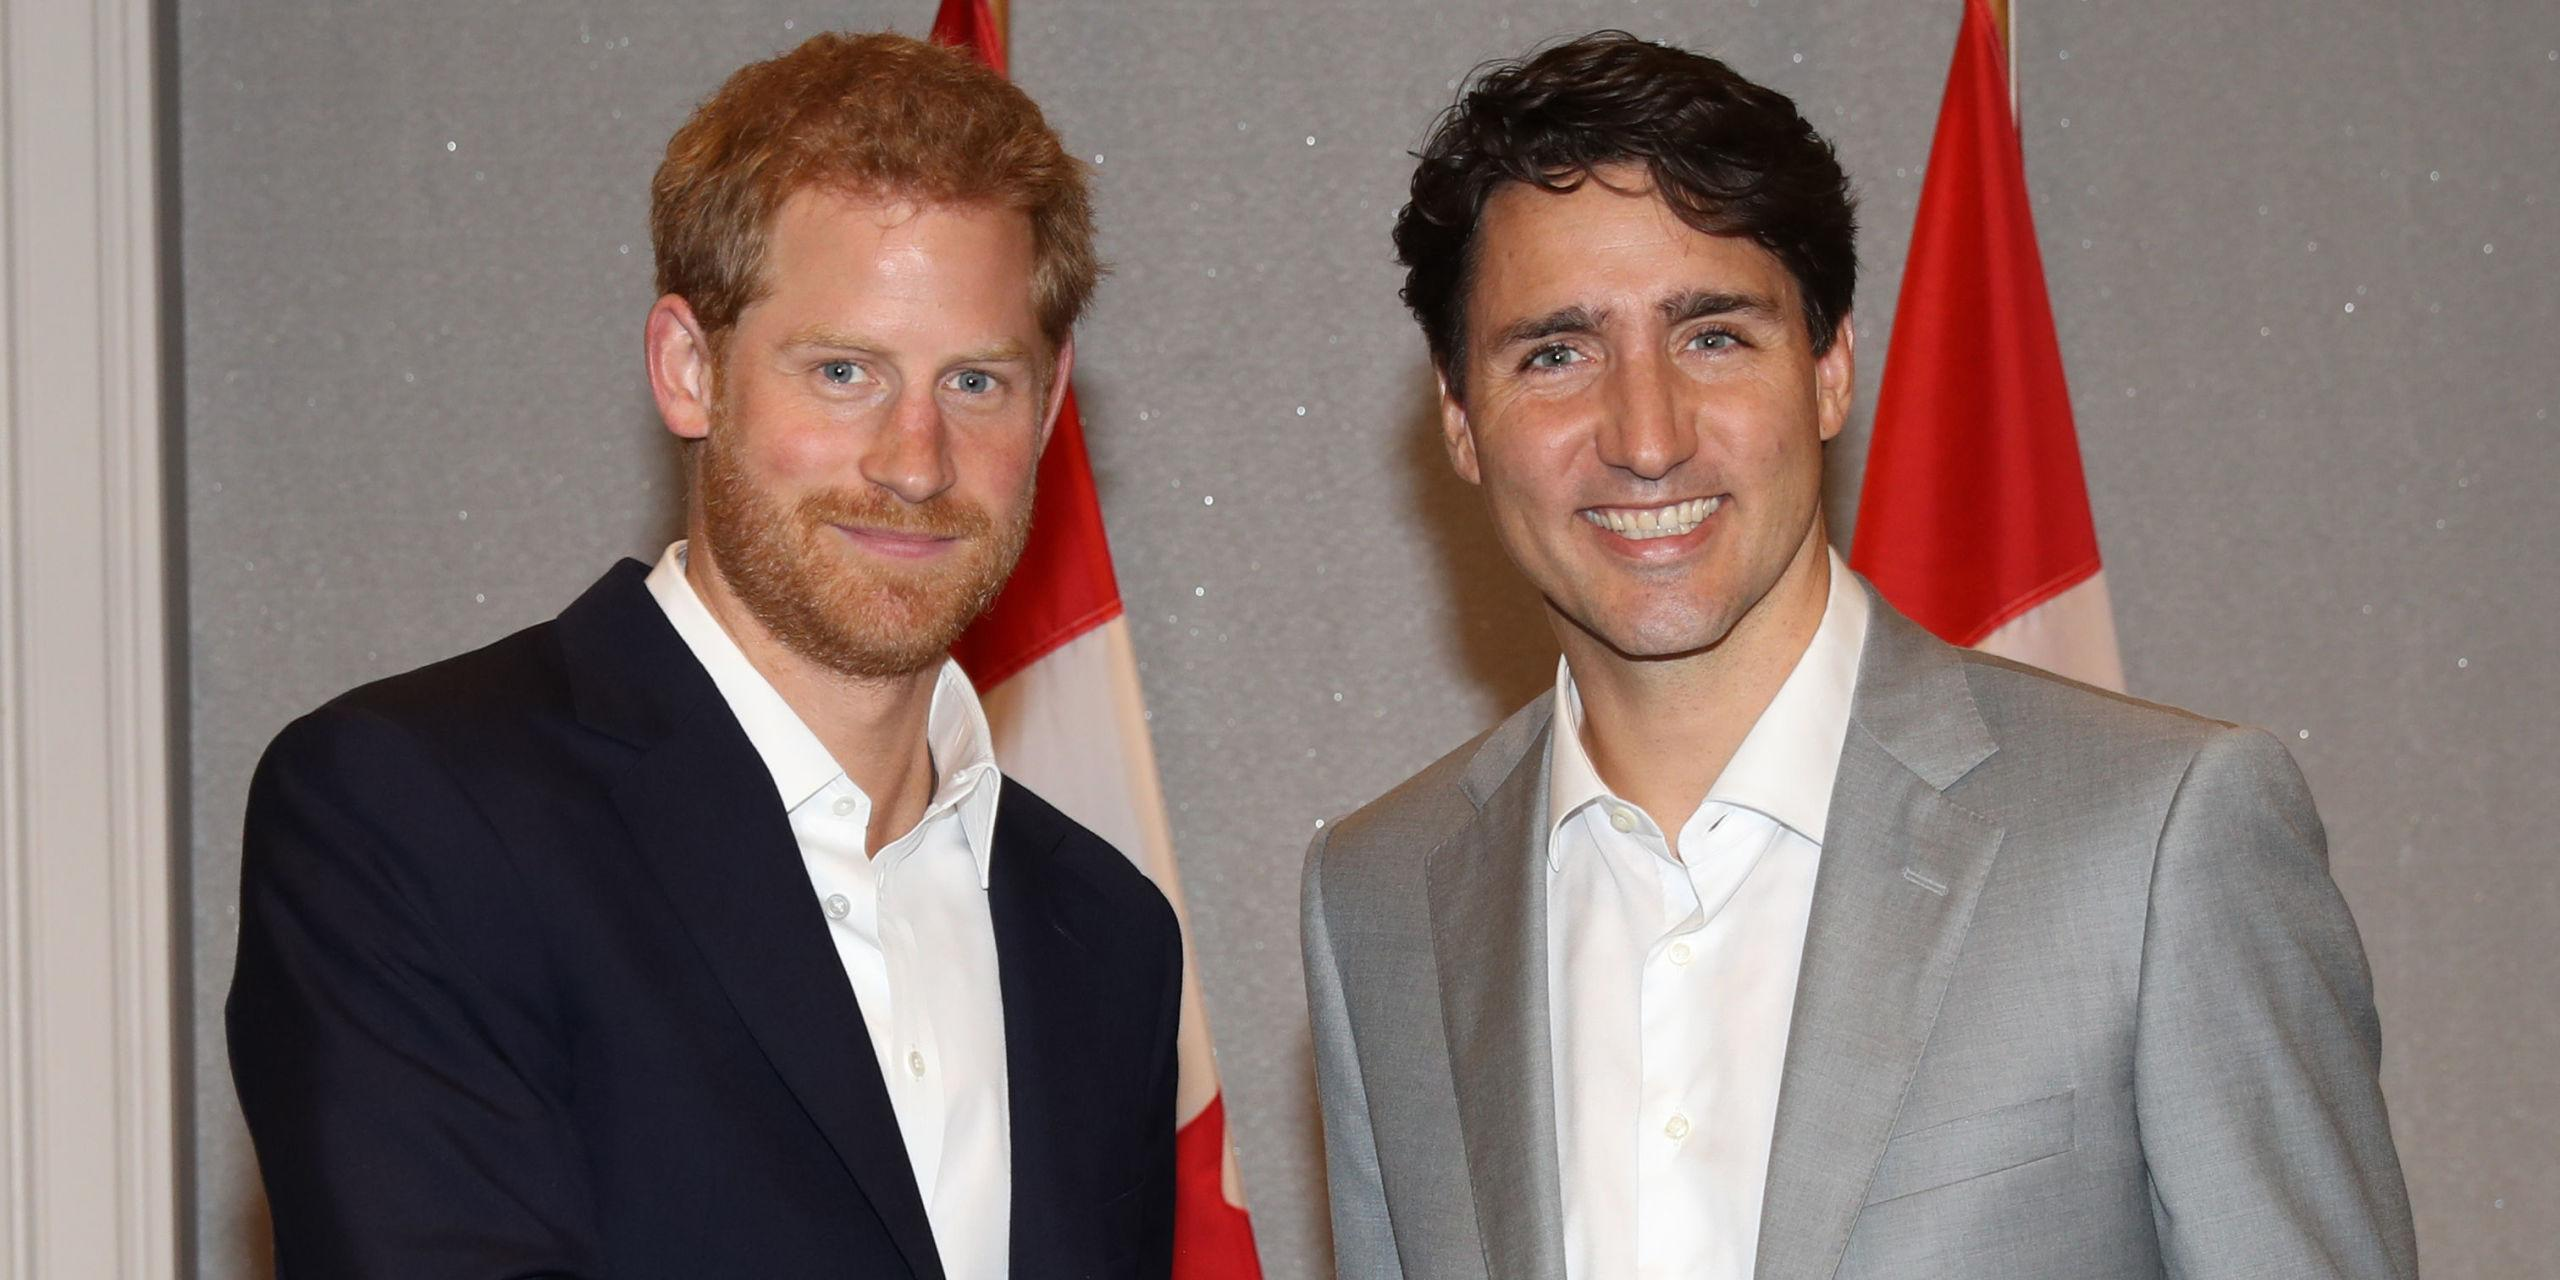 just some pictures of prince harry and justin trudeau hanging out